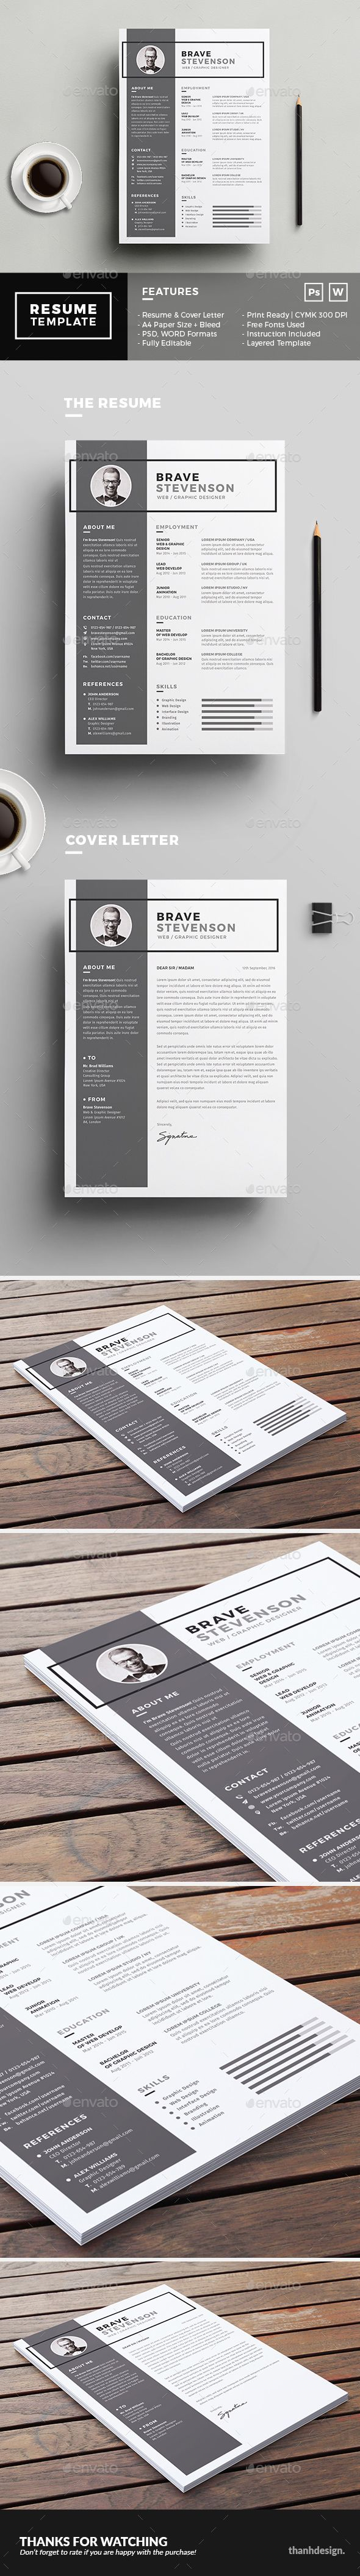 resume cover letter psd free download your cover letter open letters